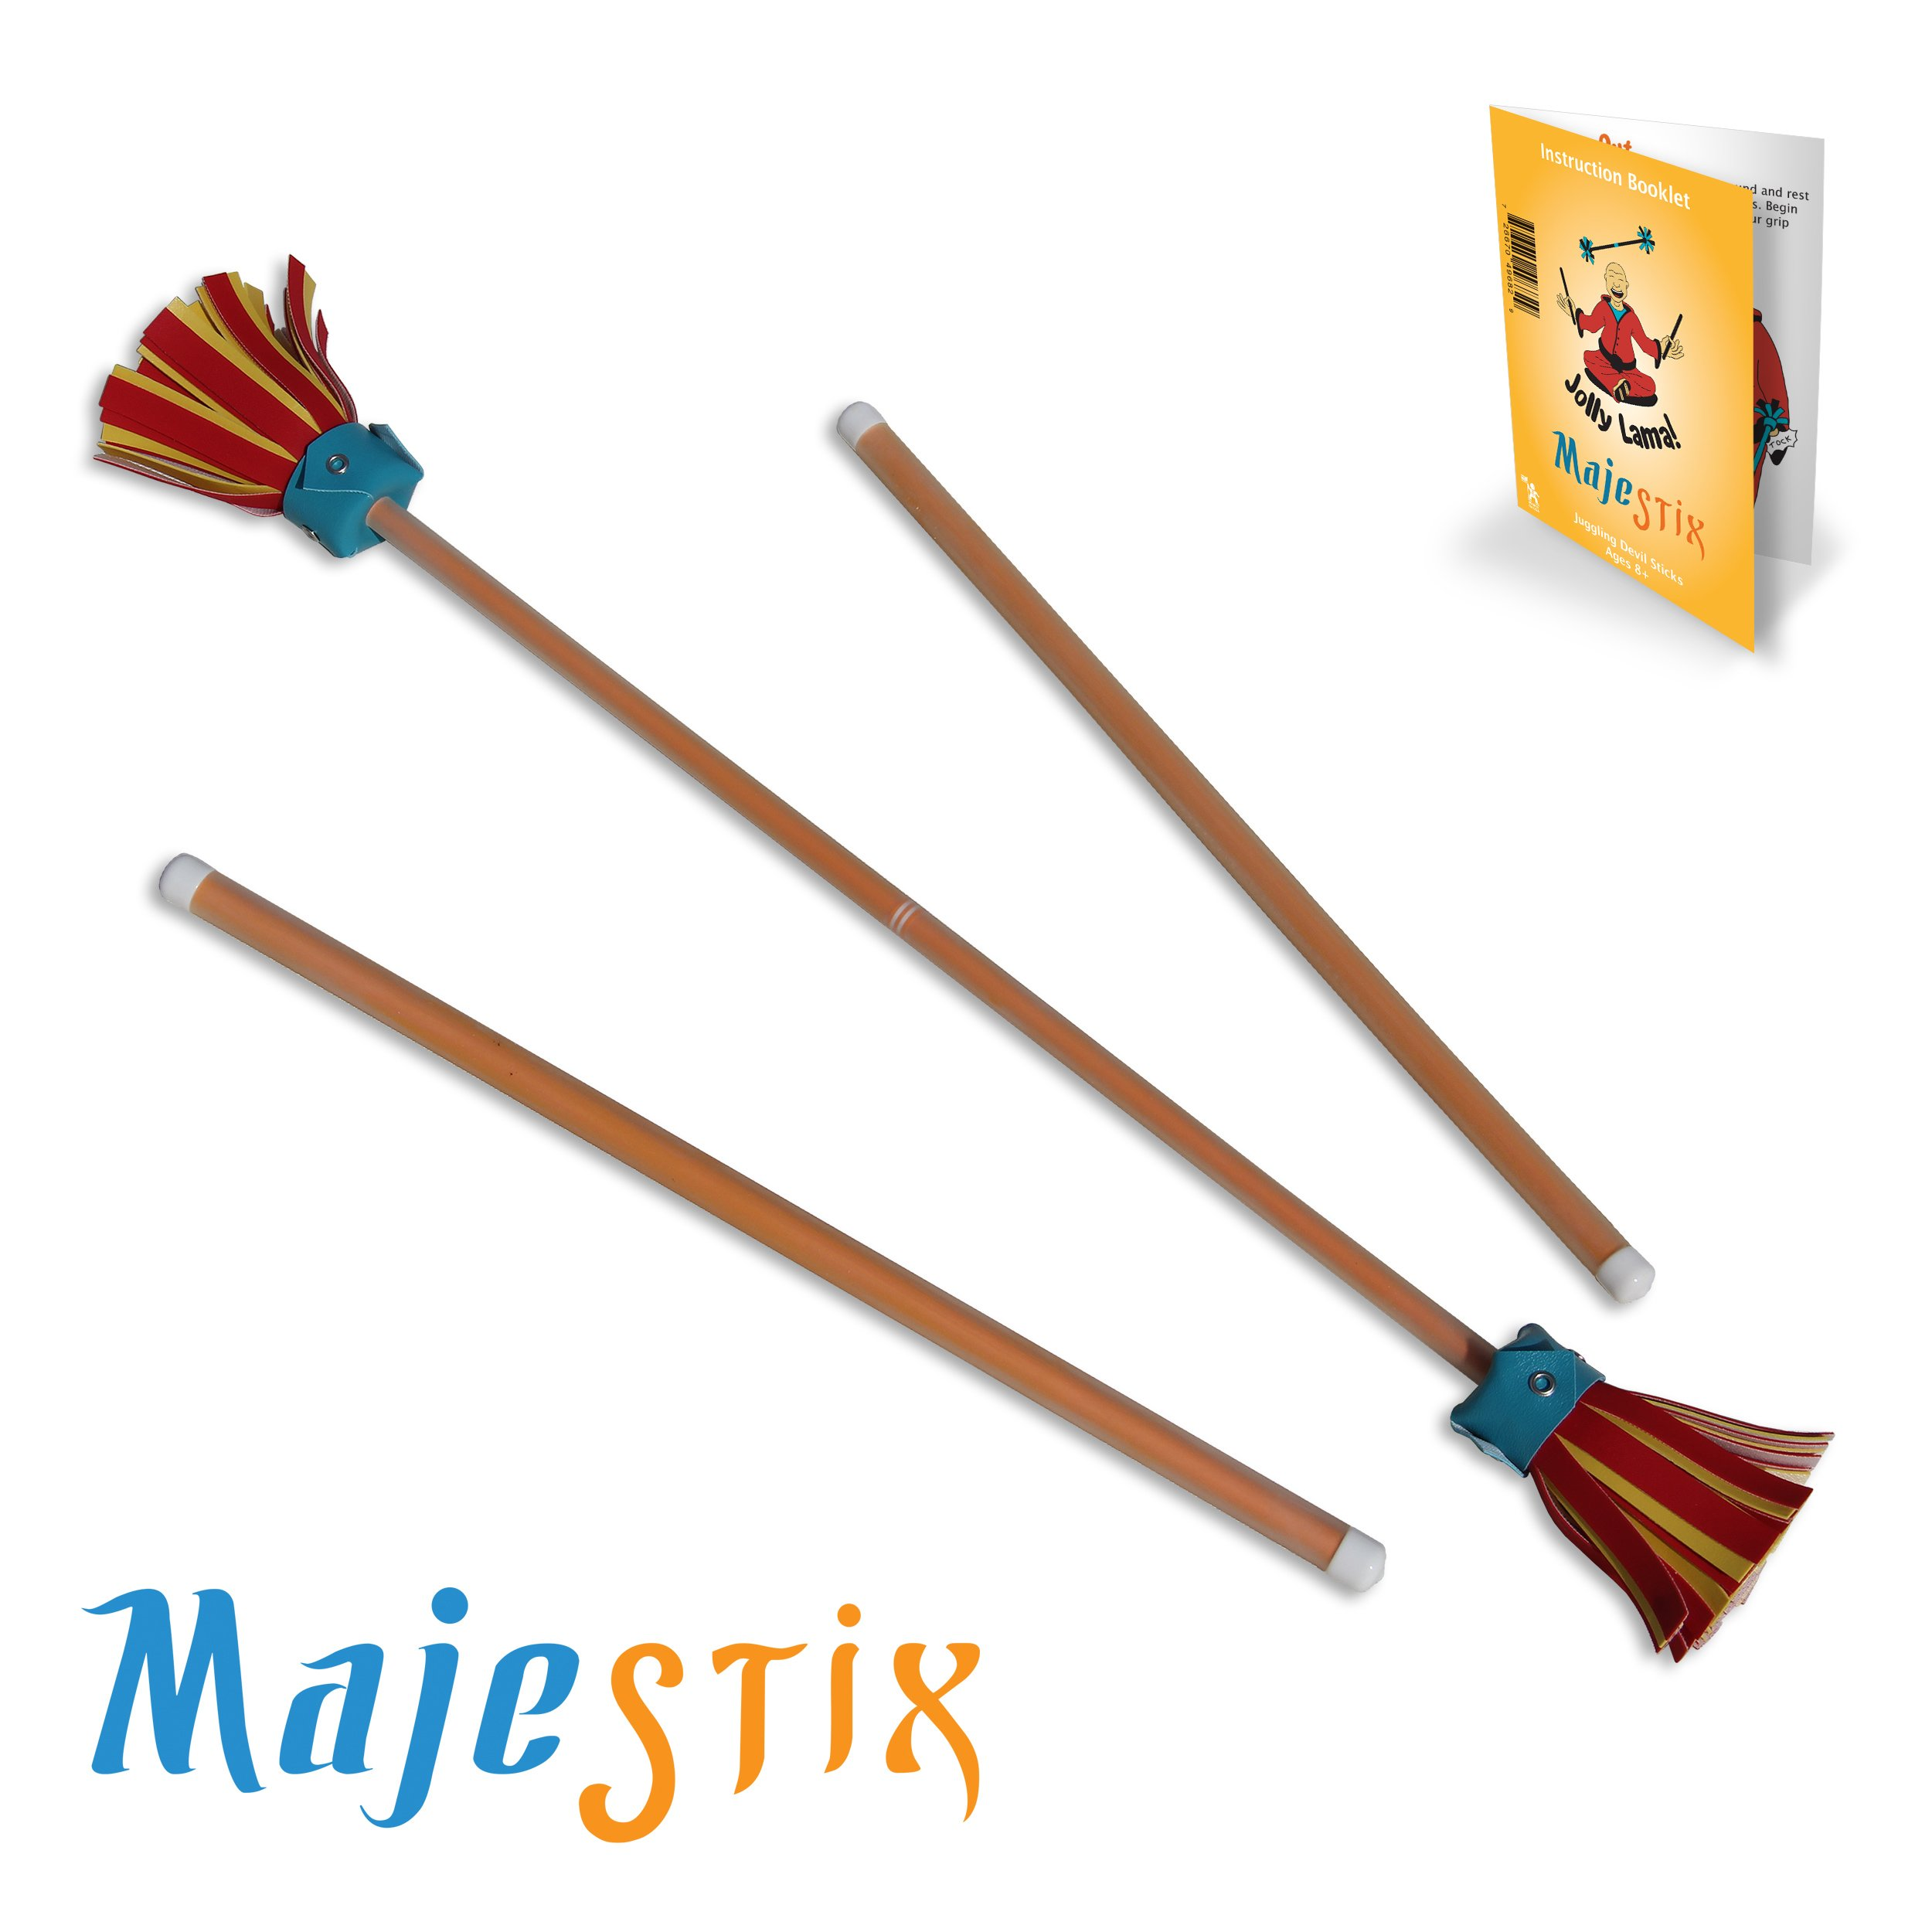 Orange Majestix Juggling Sticks Devil Sticks by Jolly Lama!